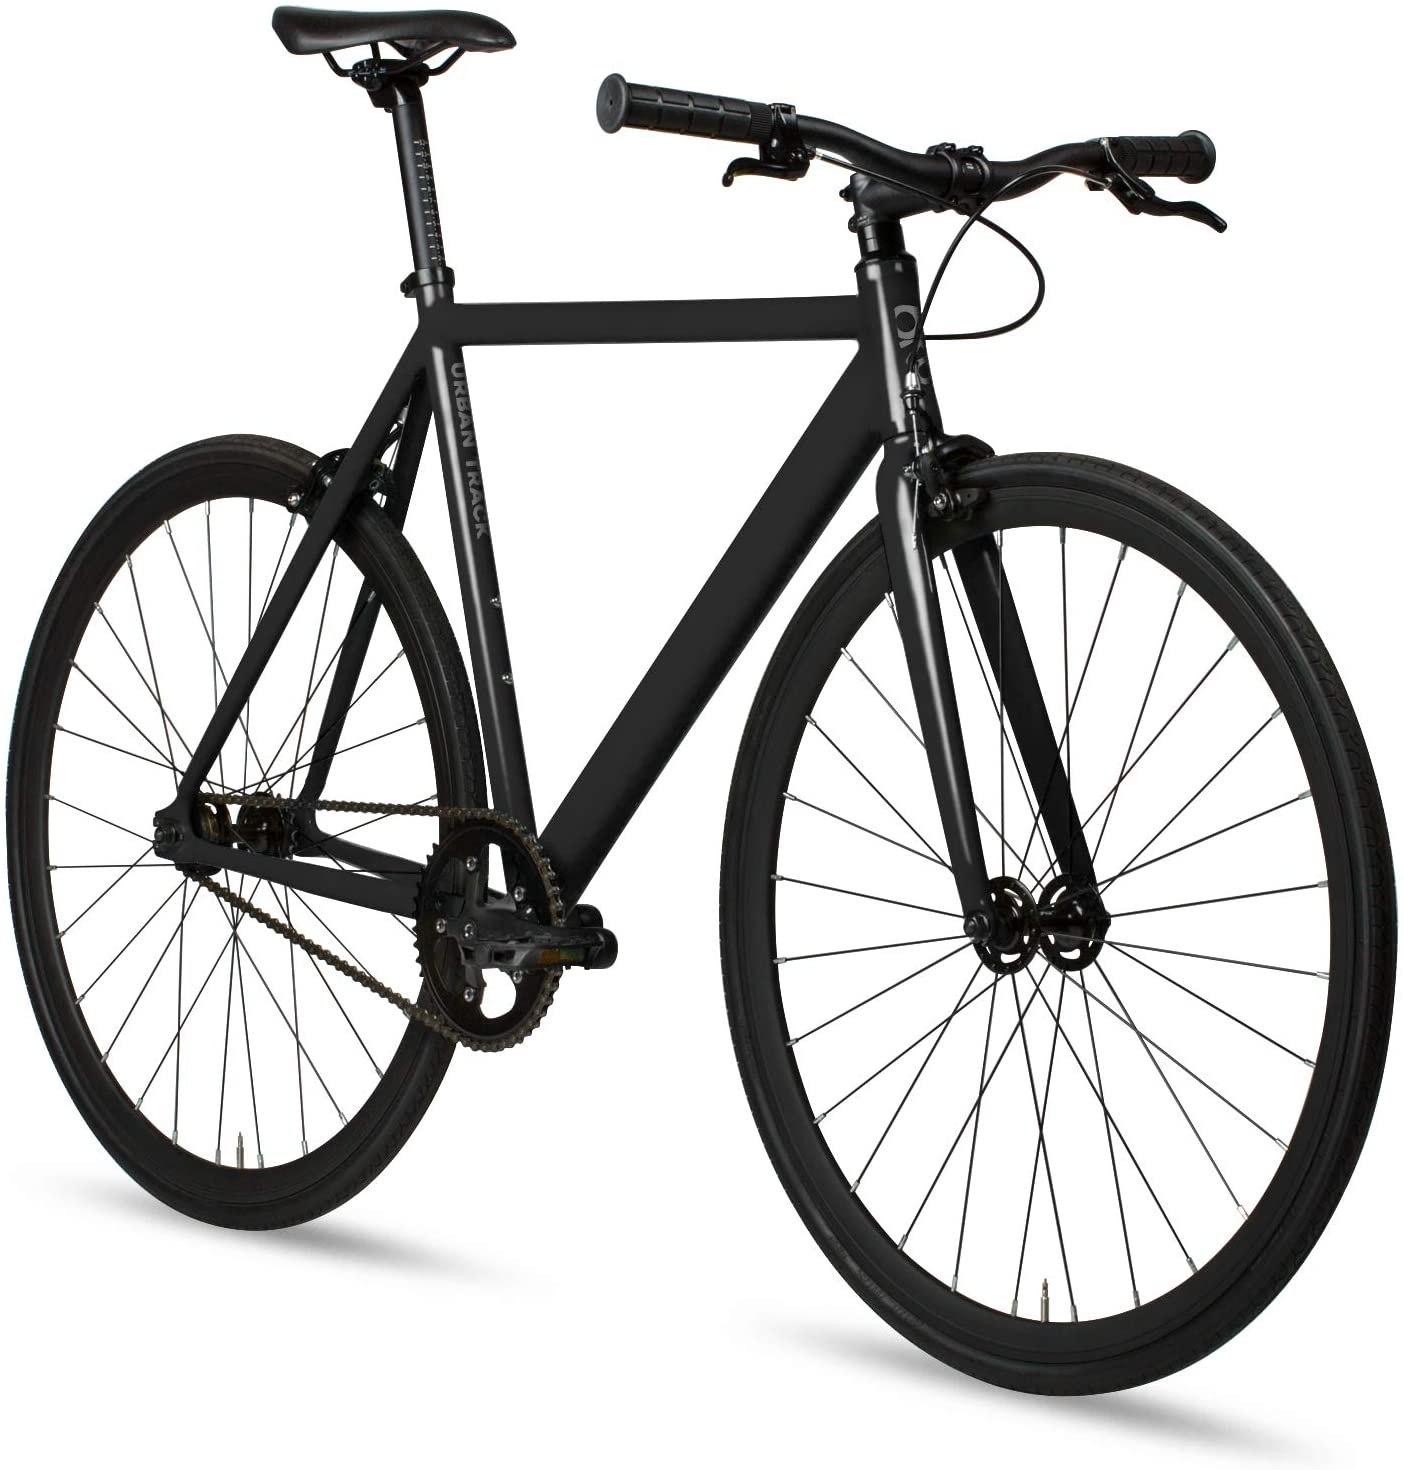 6KU Aluminum Single-Speed Bike